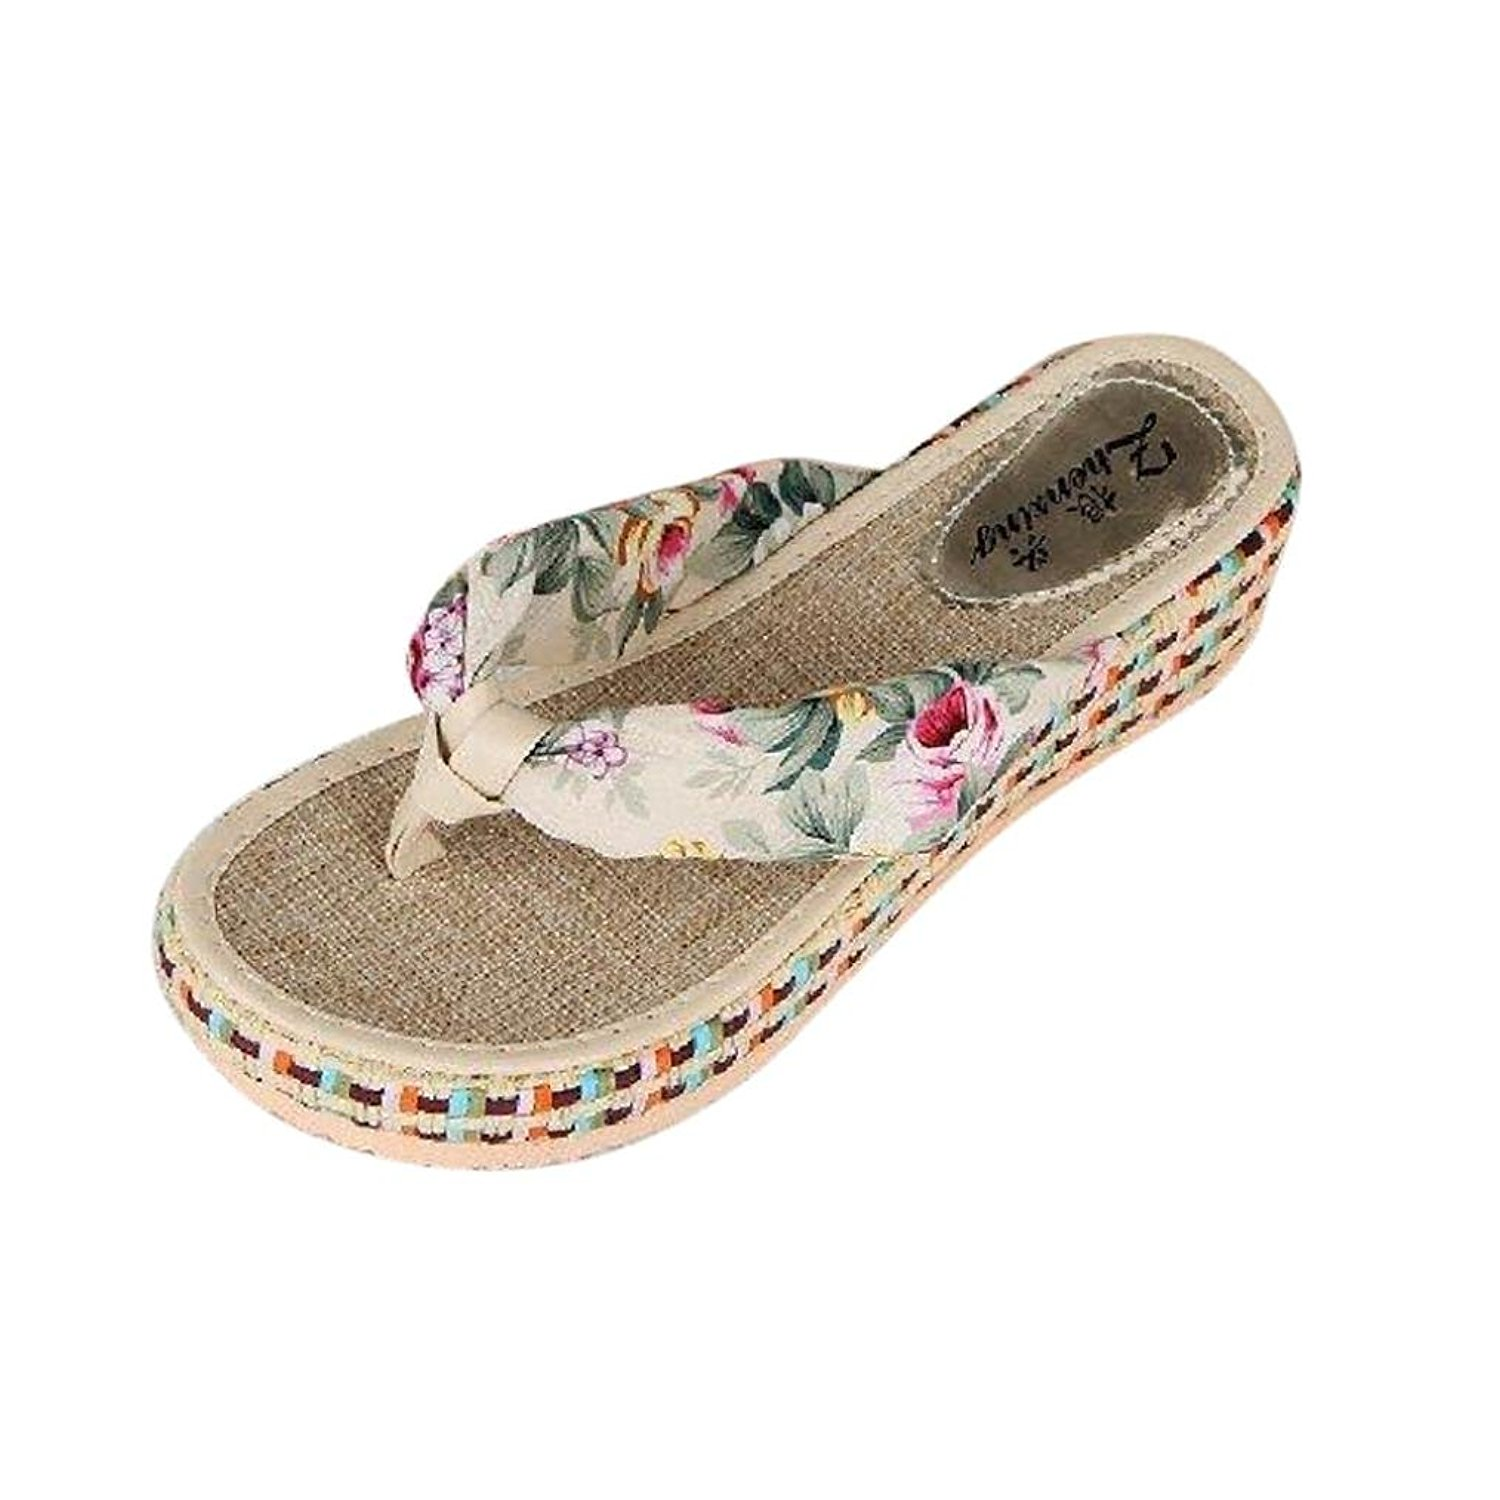 4cddb158967 Get Quotations · Sinfu Women Beach Thong Flip Flops Wedge Platform Slippers  Thick Sole Casual Slippers